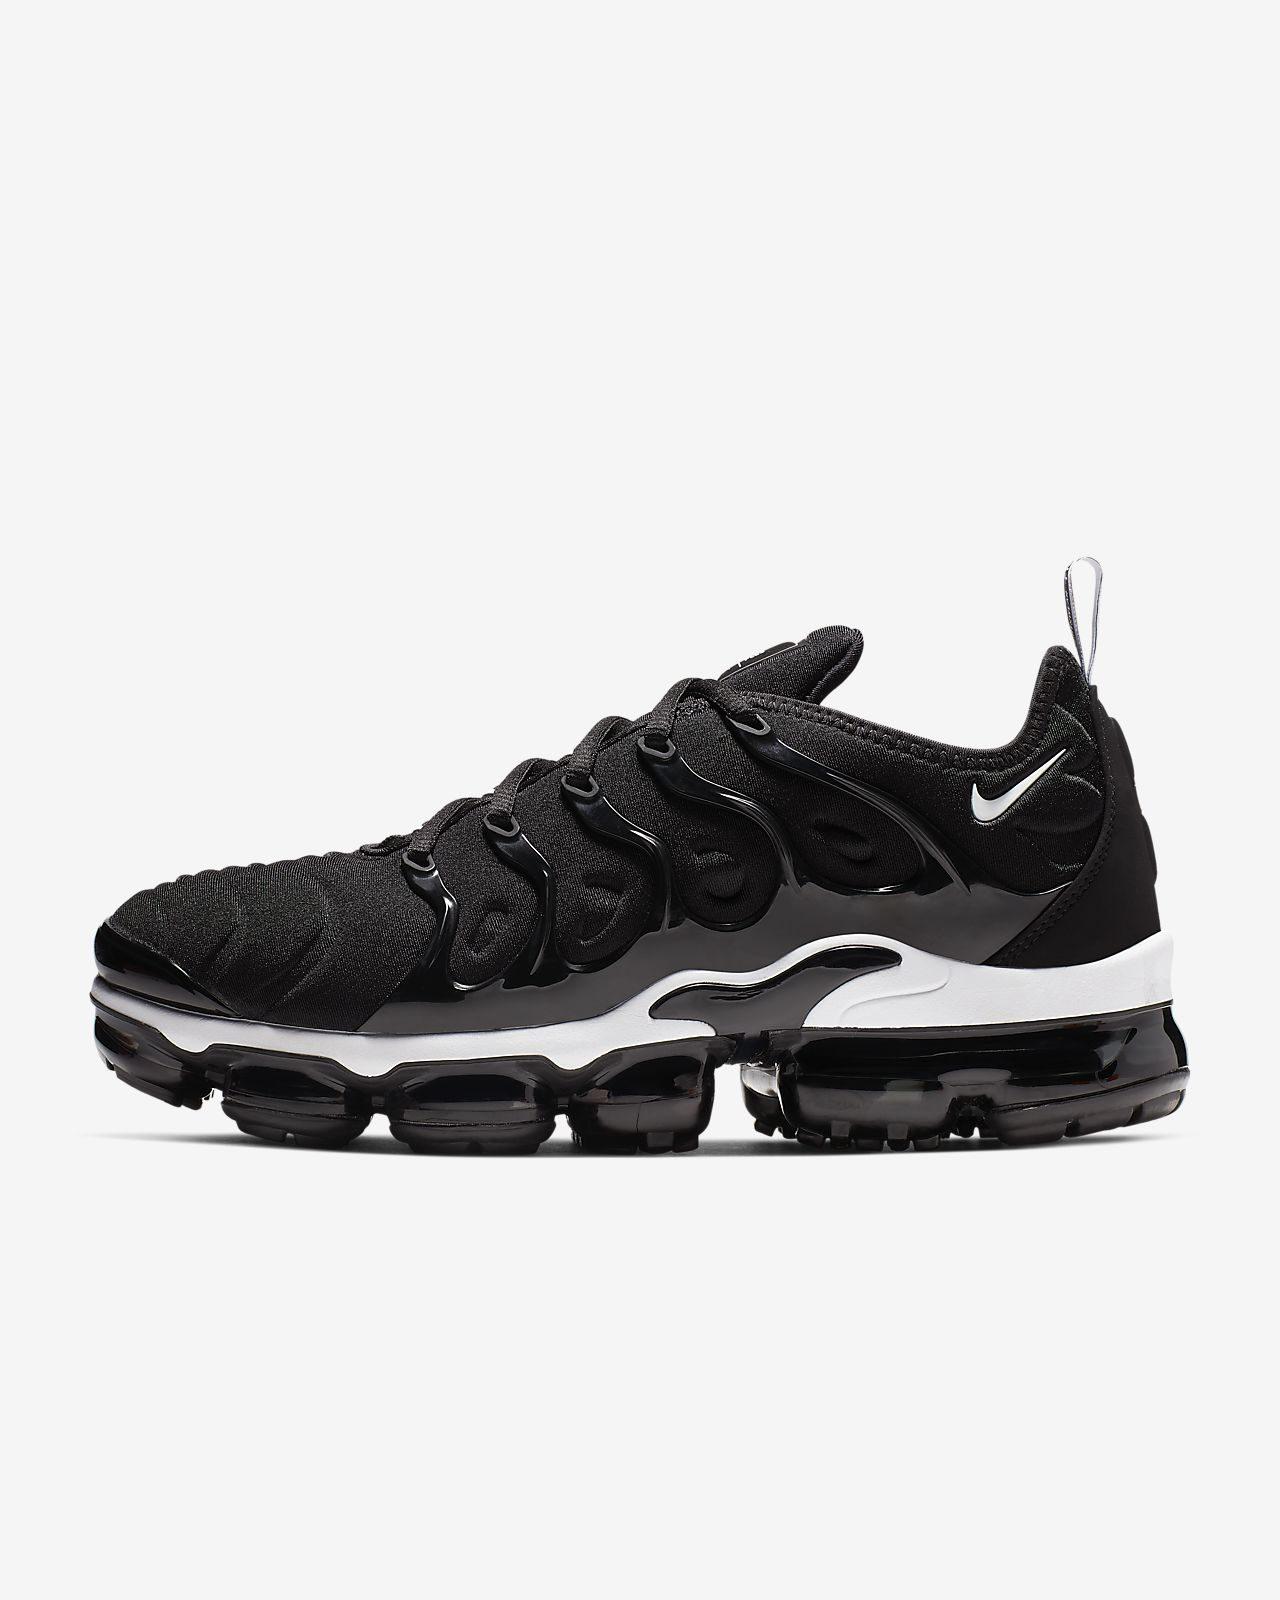 9921161c78af8 Nike Air VaporMax Plus Men s Shoe. Nike.com GB